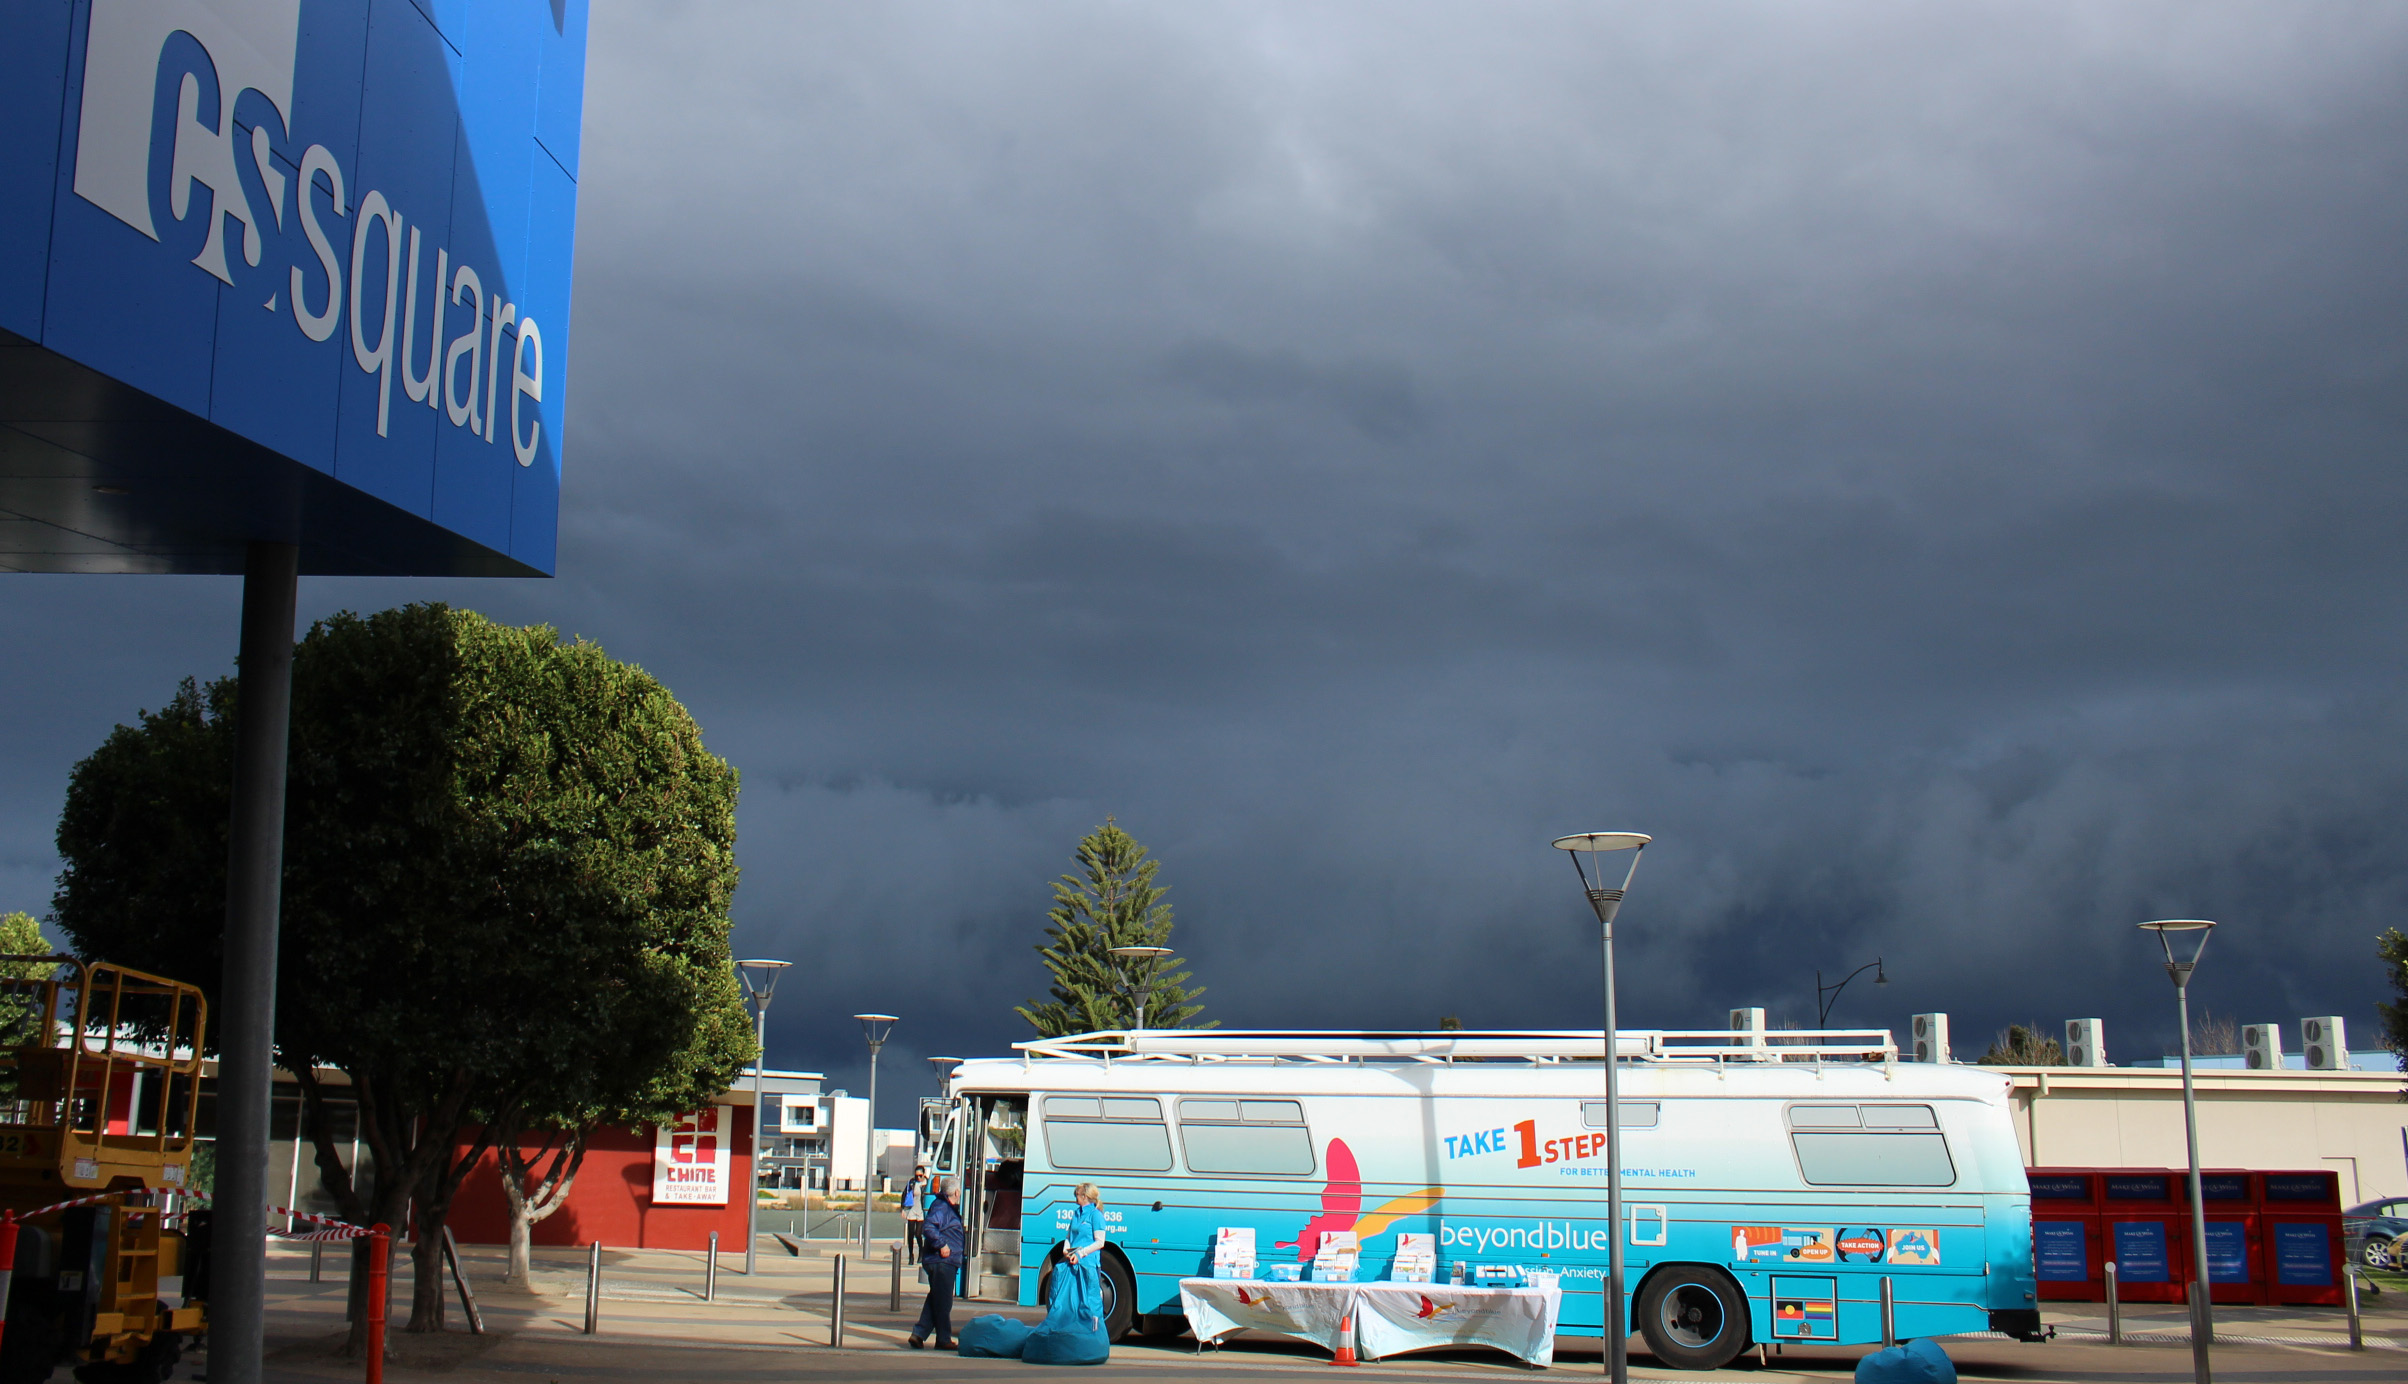 The storm clouds approach over Caroline Springs.